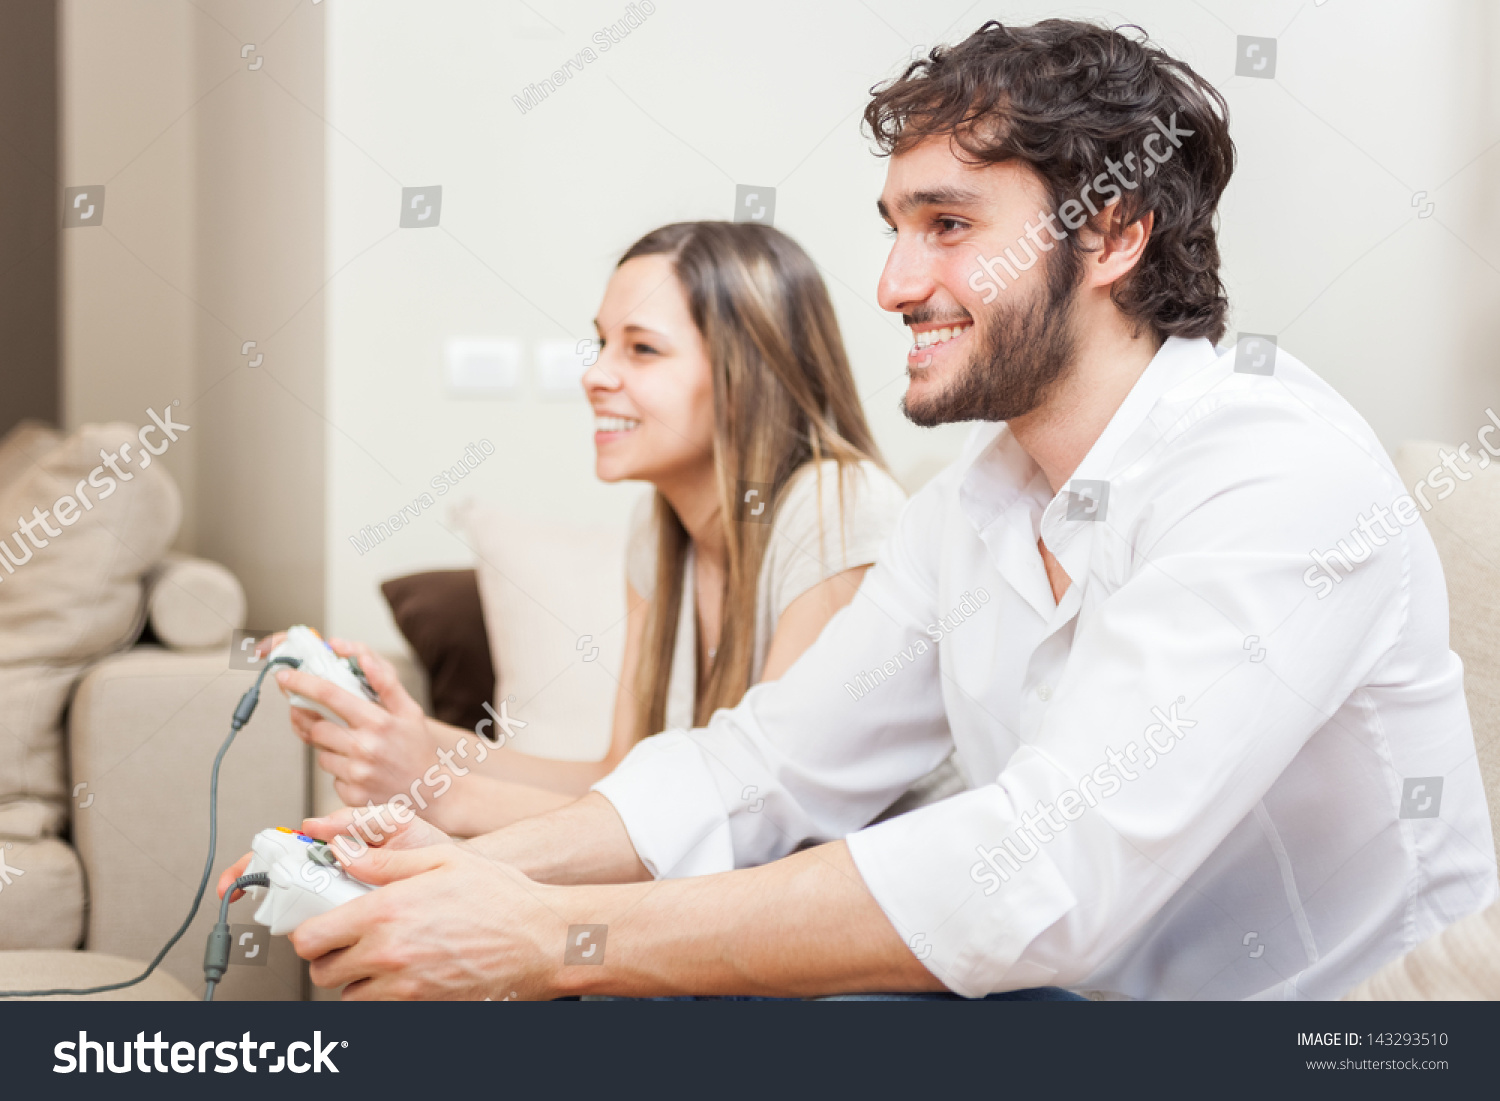 Young Couple Apartment Young Couple Playing Video Games In Their Apartment Stock